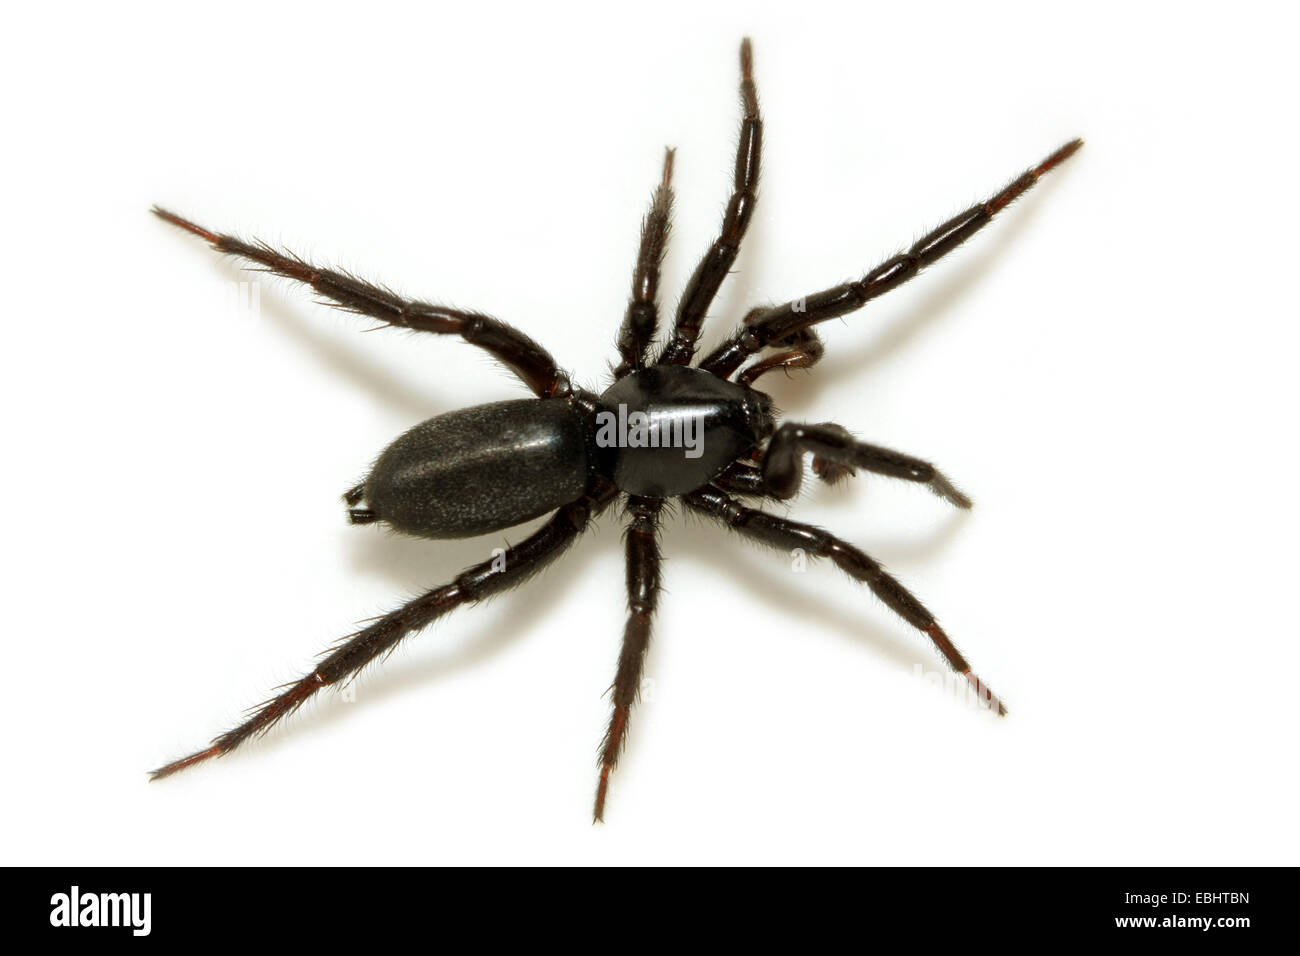 A male Ground spider (Zelotes subterraneus) on white background. Ground spiders are part of the family Gnaphosidae. - Stock Image